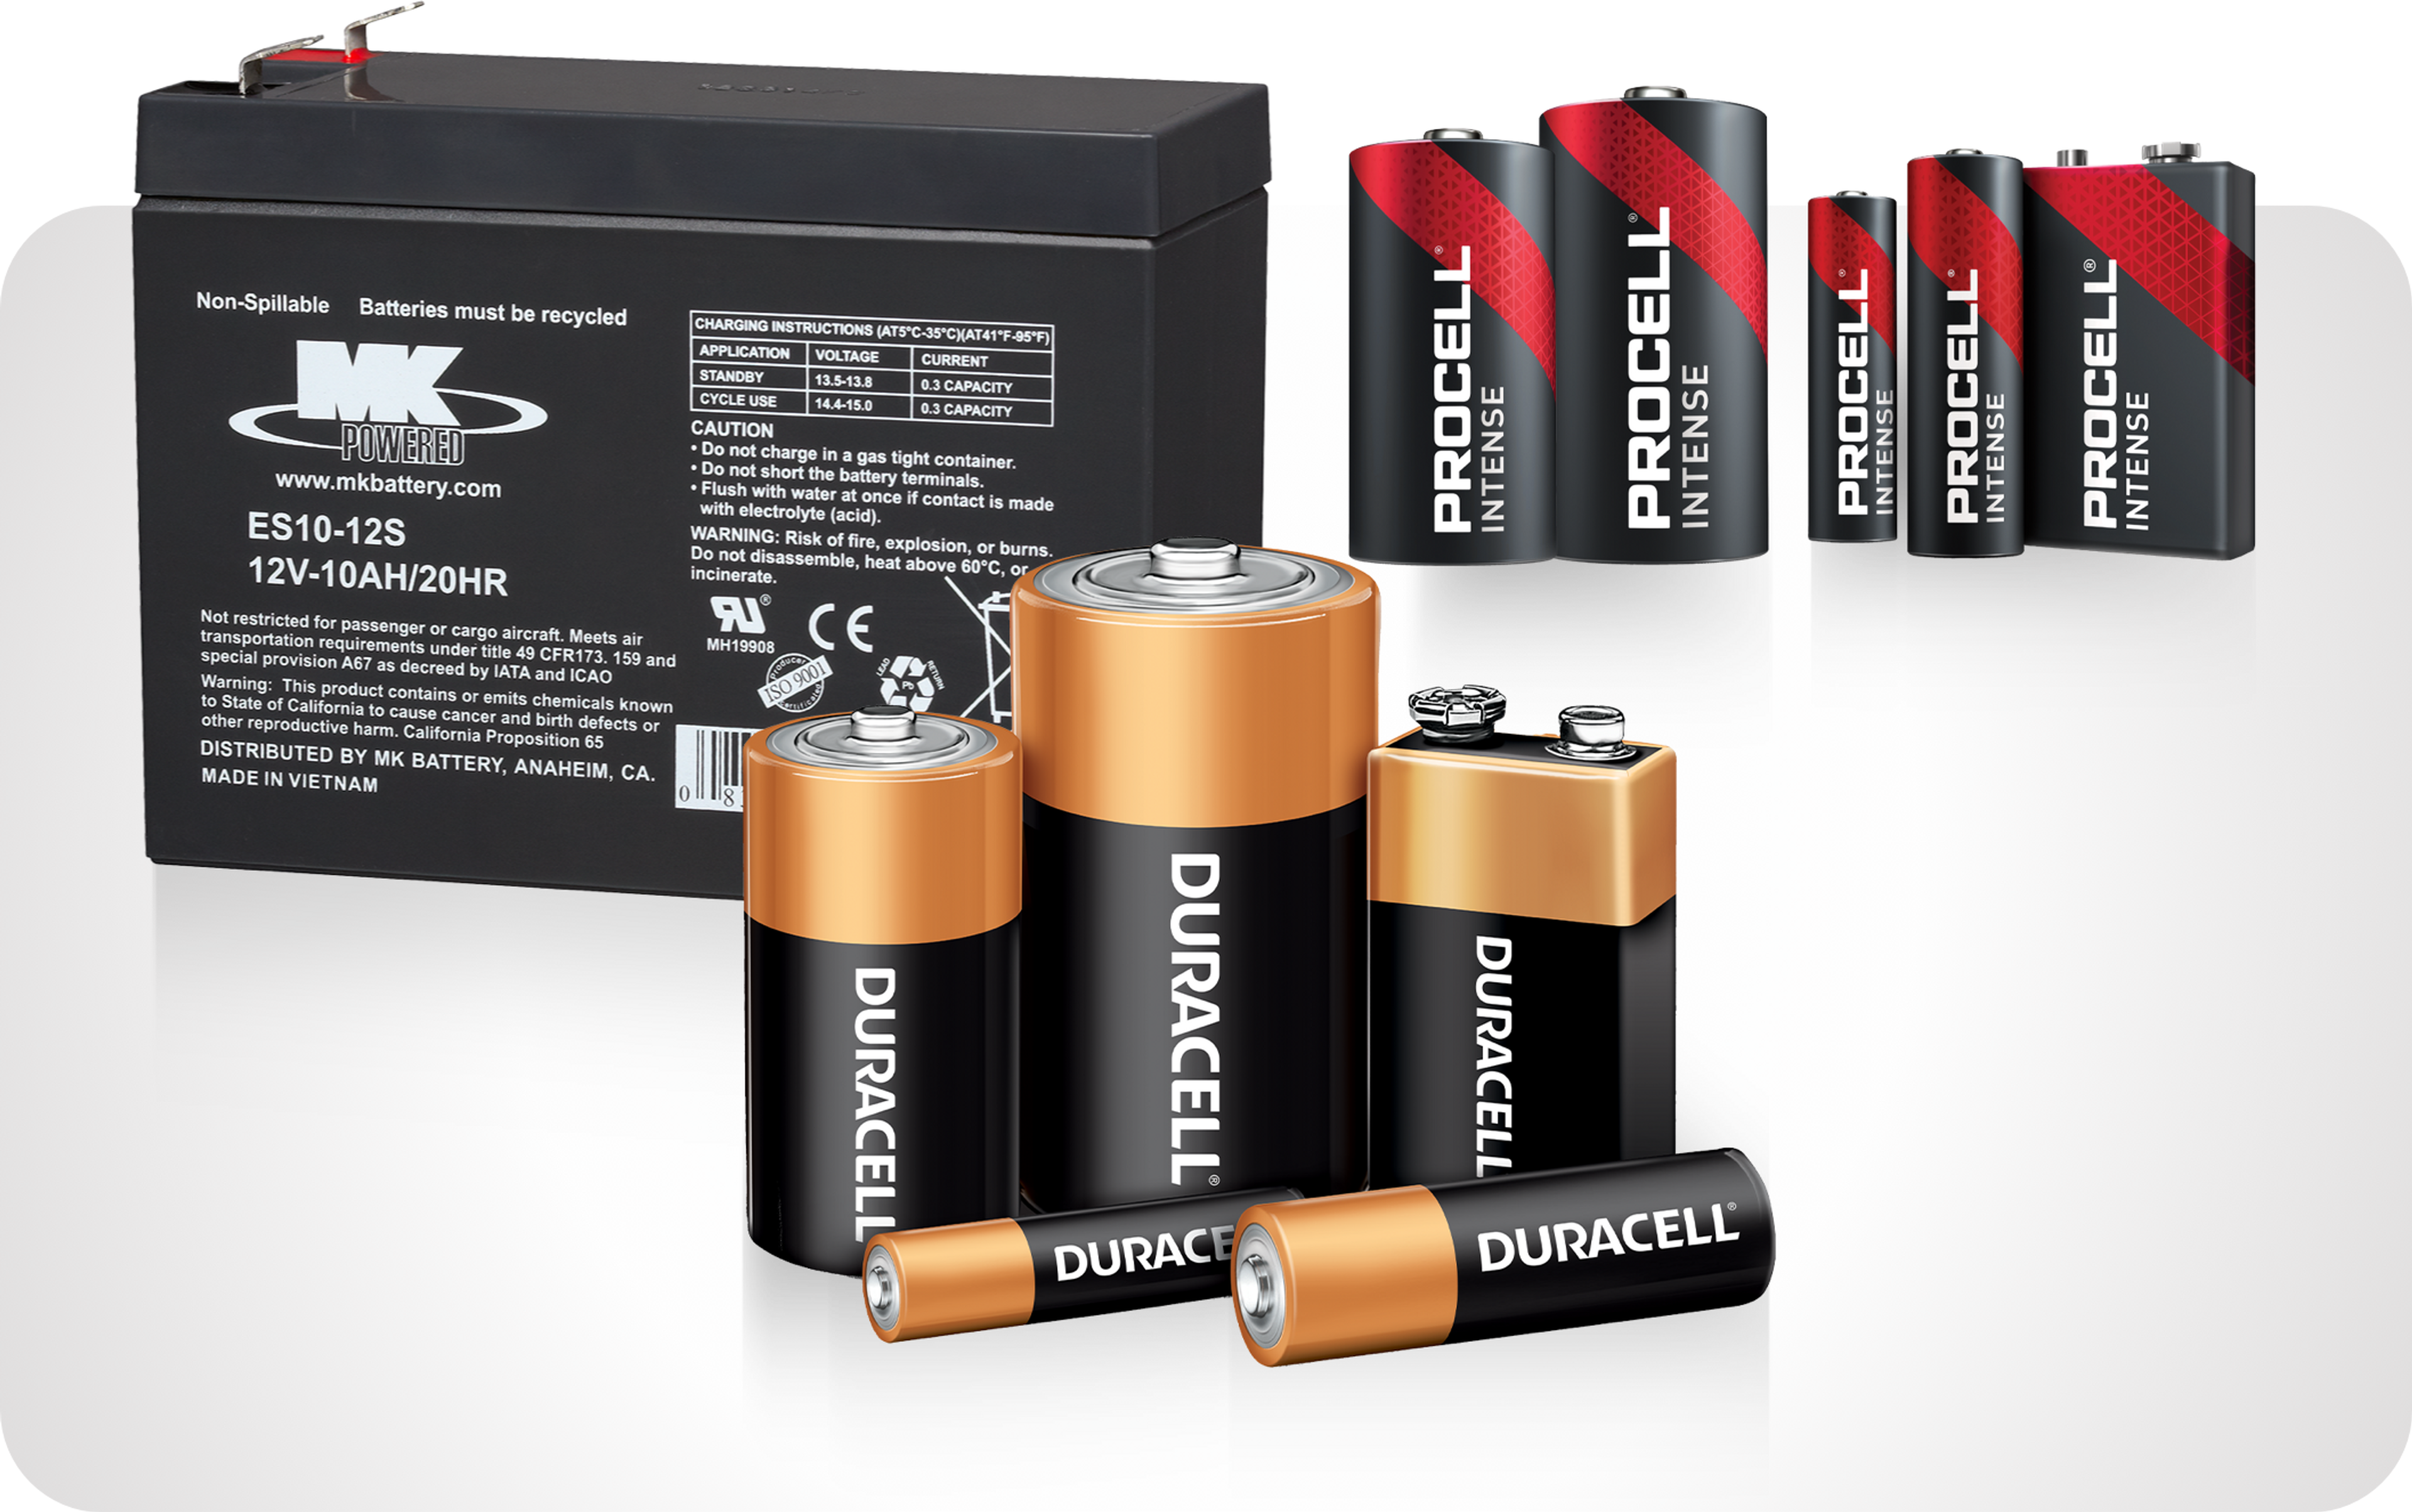 Picture of various batteries including duracell, procell and East Penn car battery